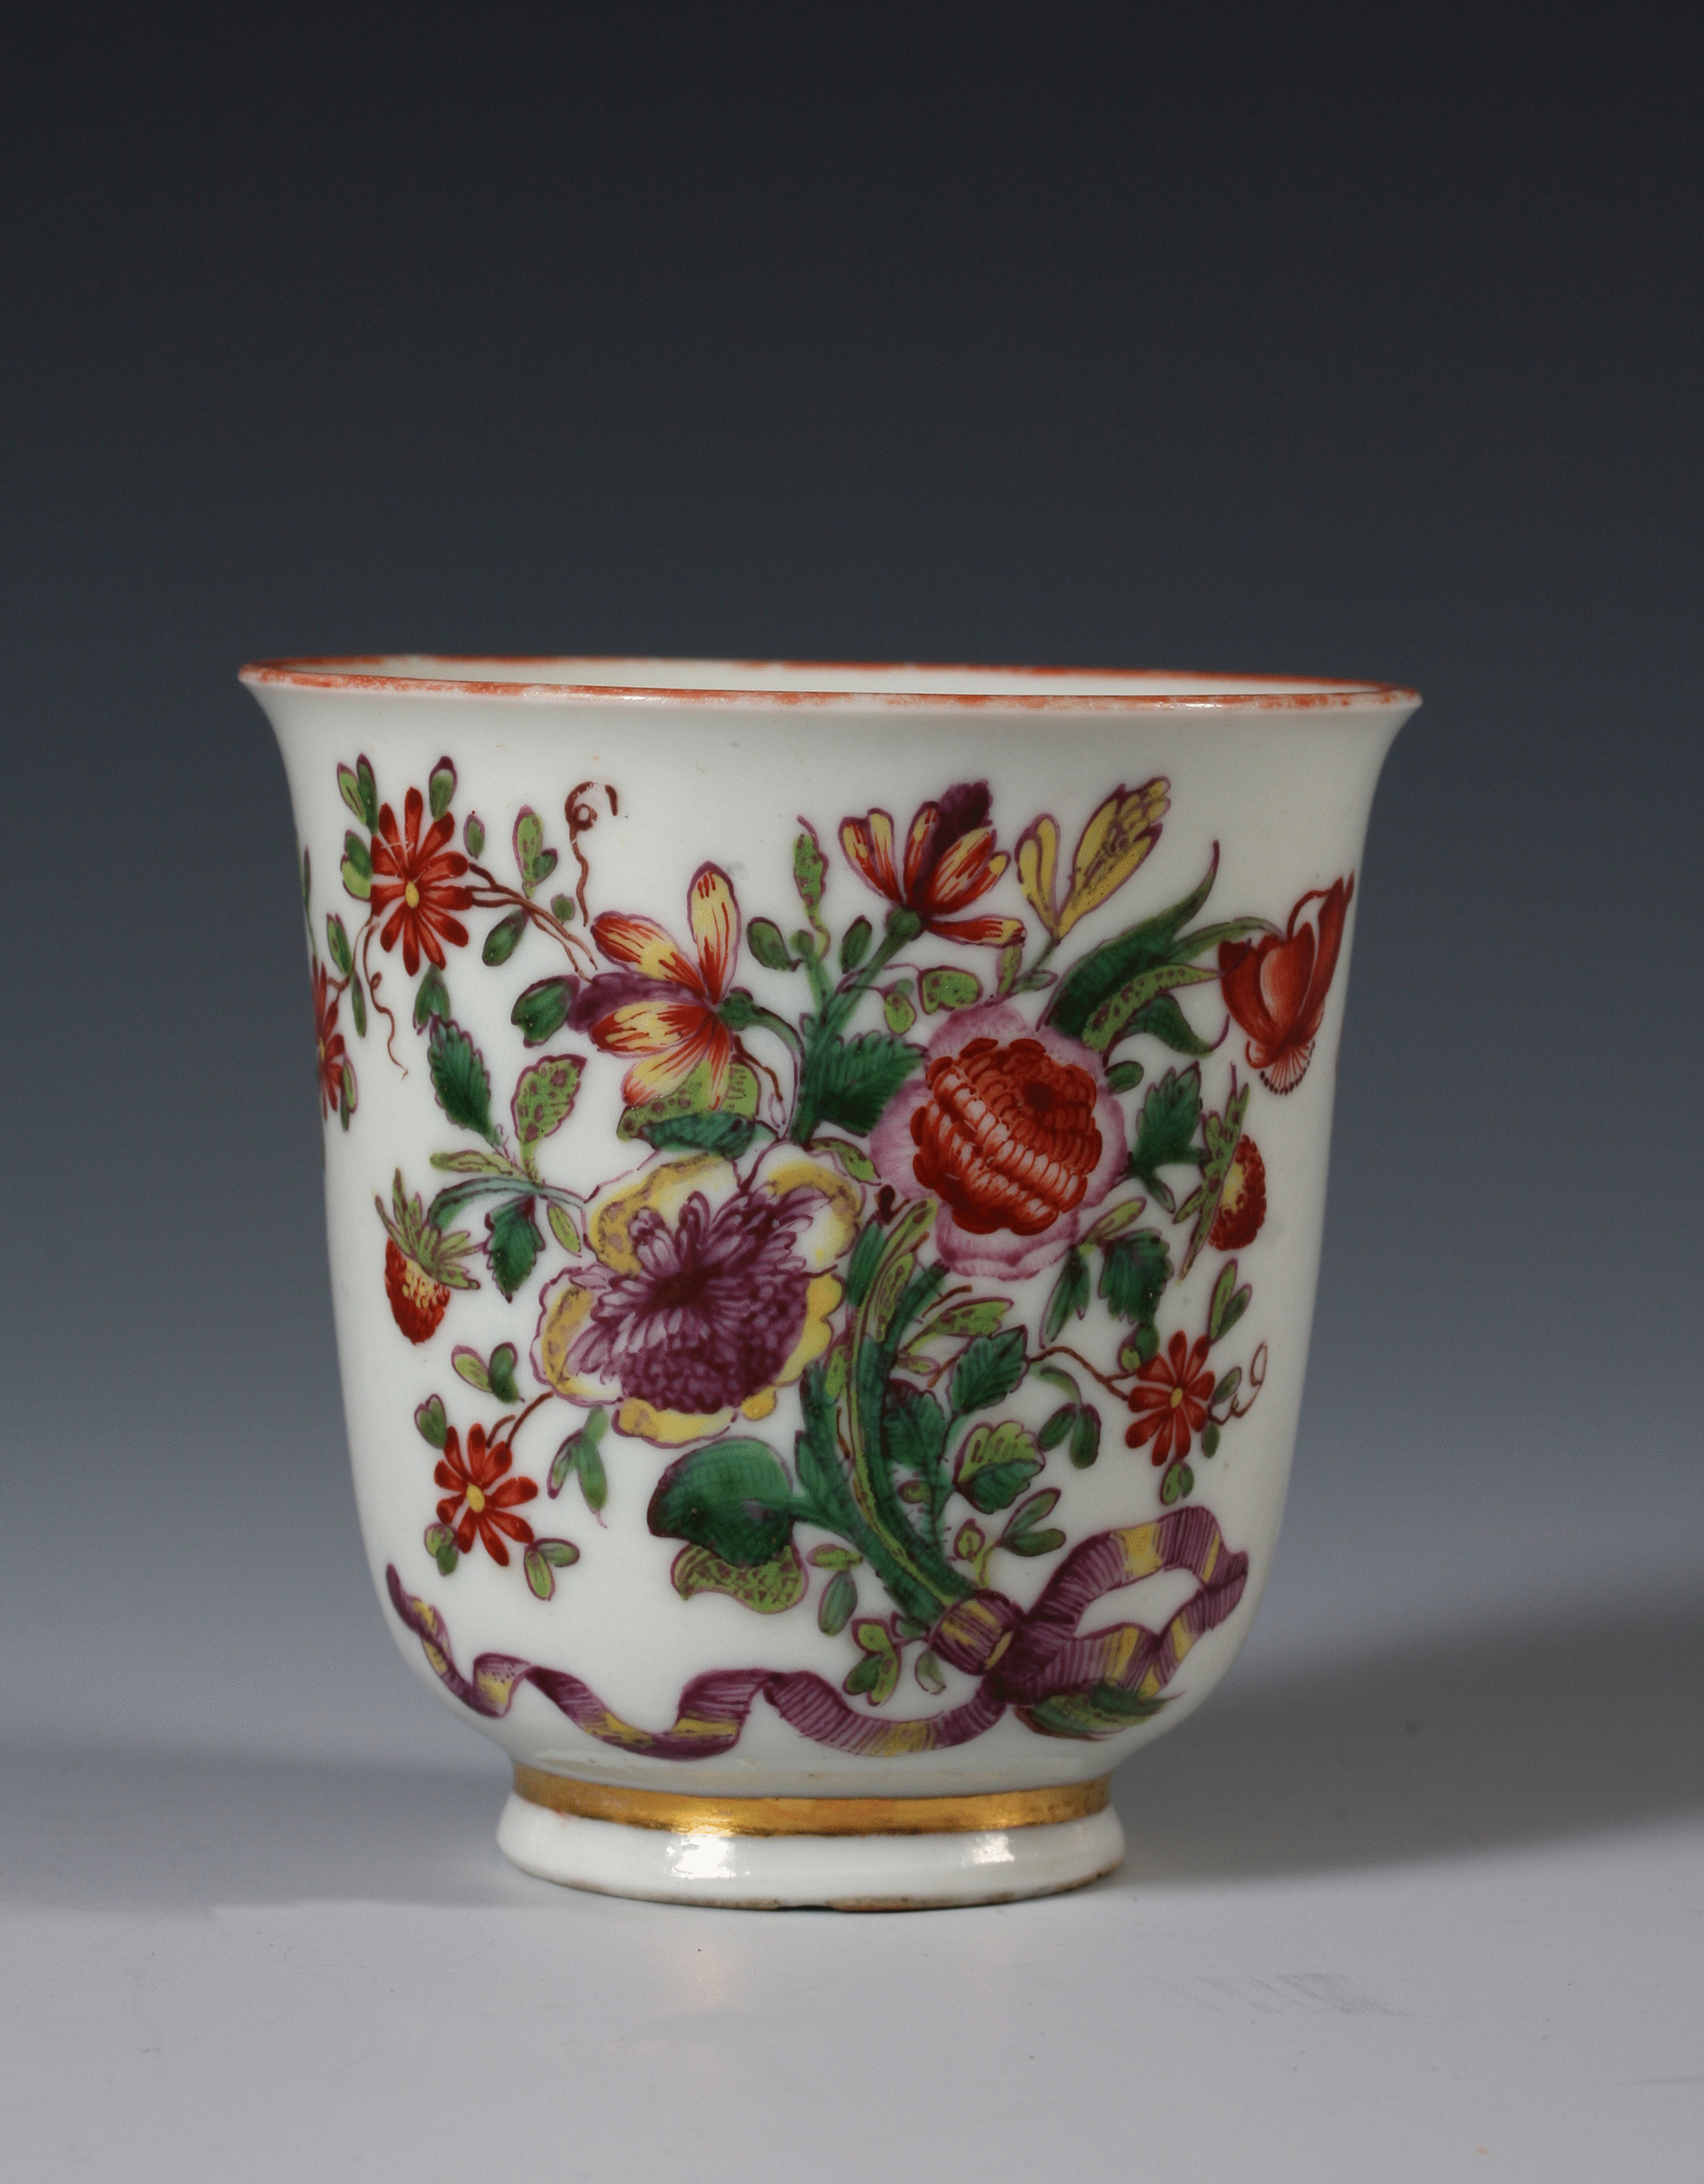 An early Doccia cup